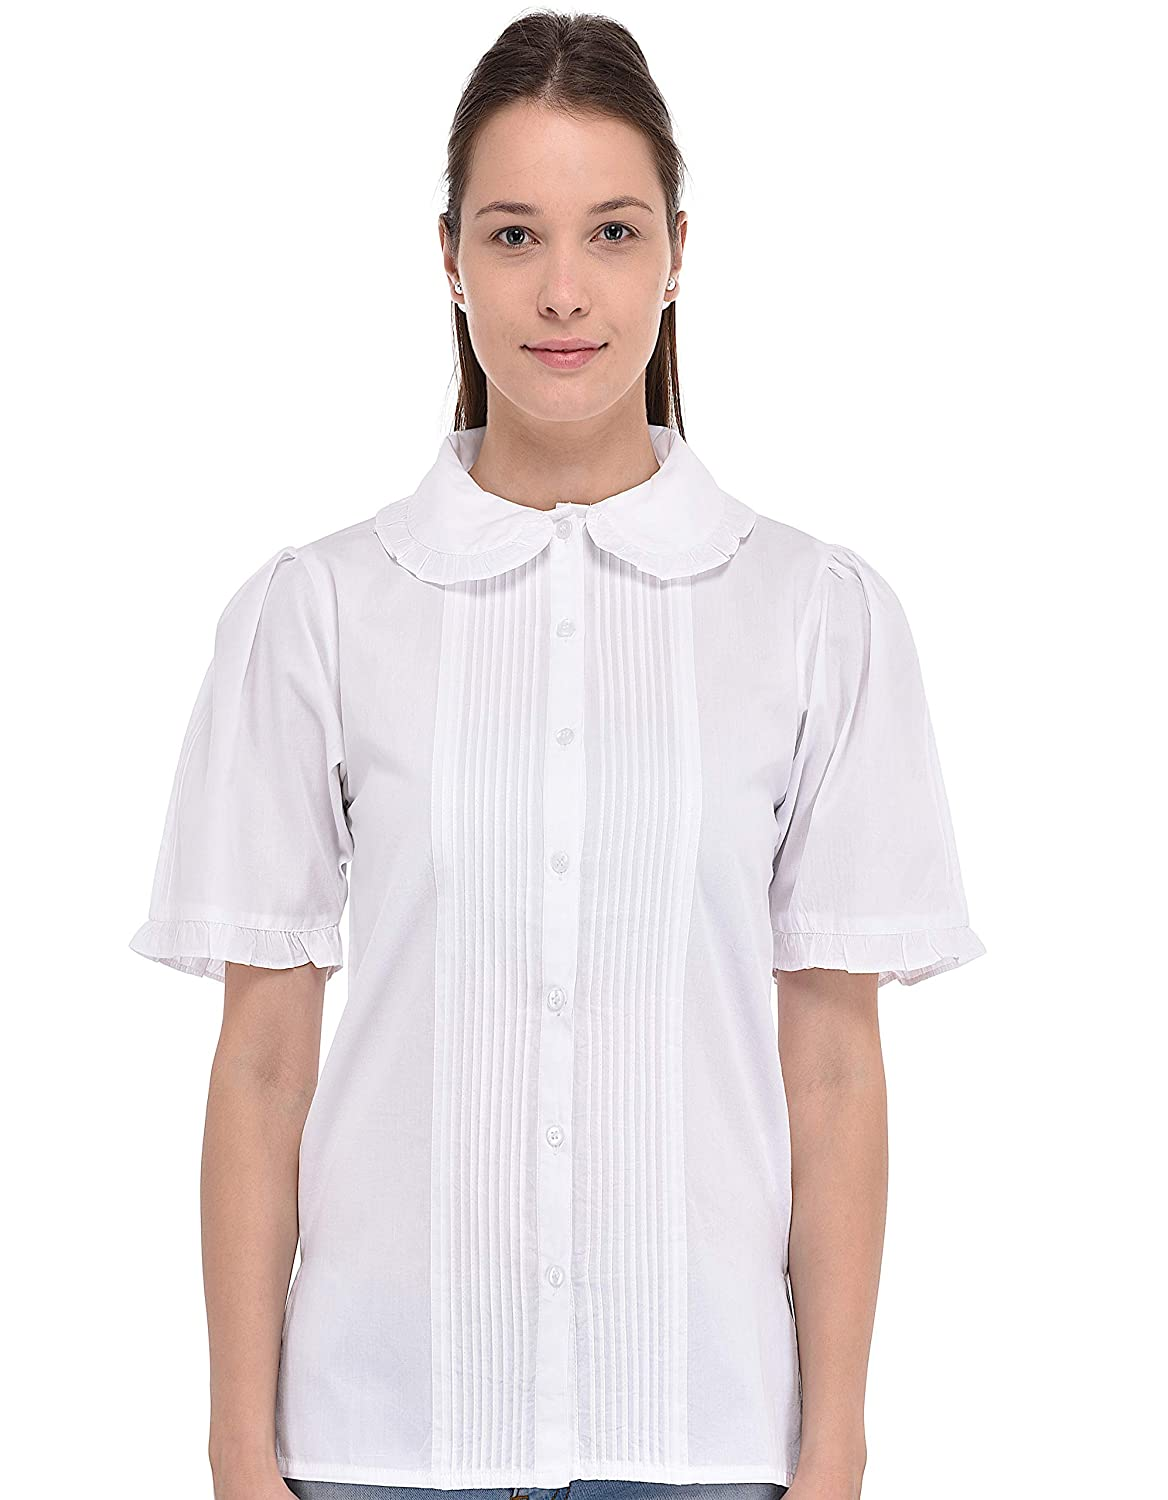 Cotton Lane White Ruffle Collar Blouse